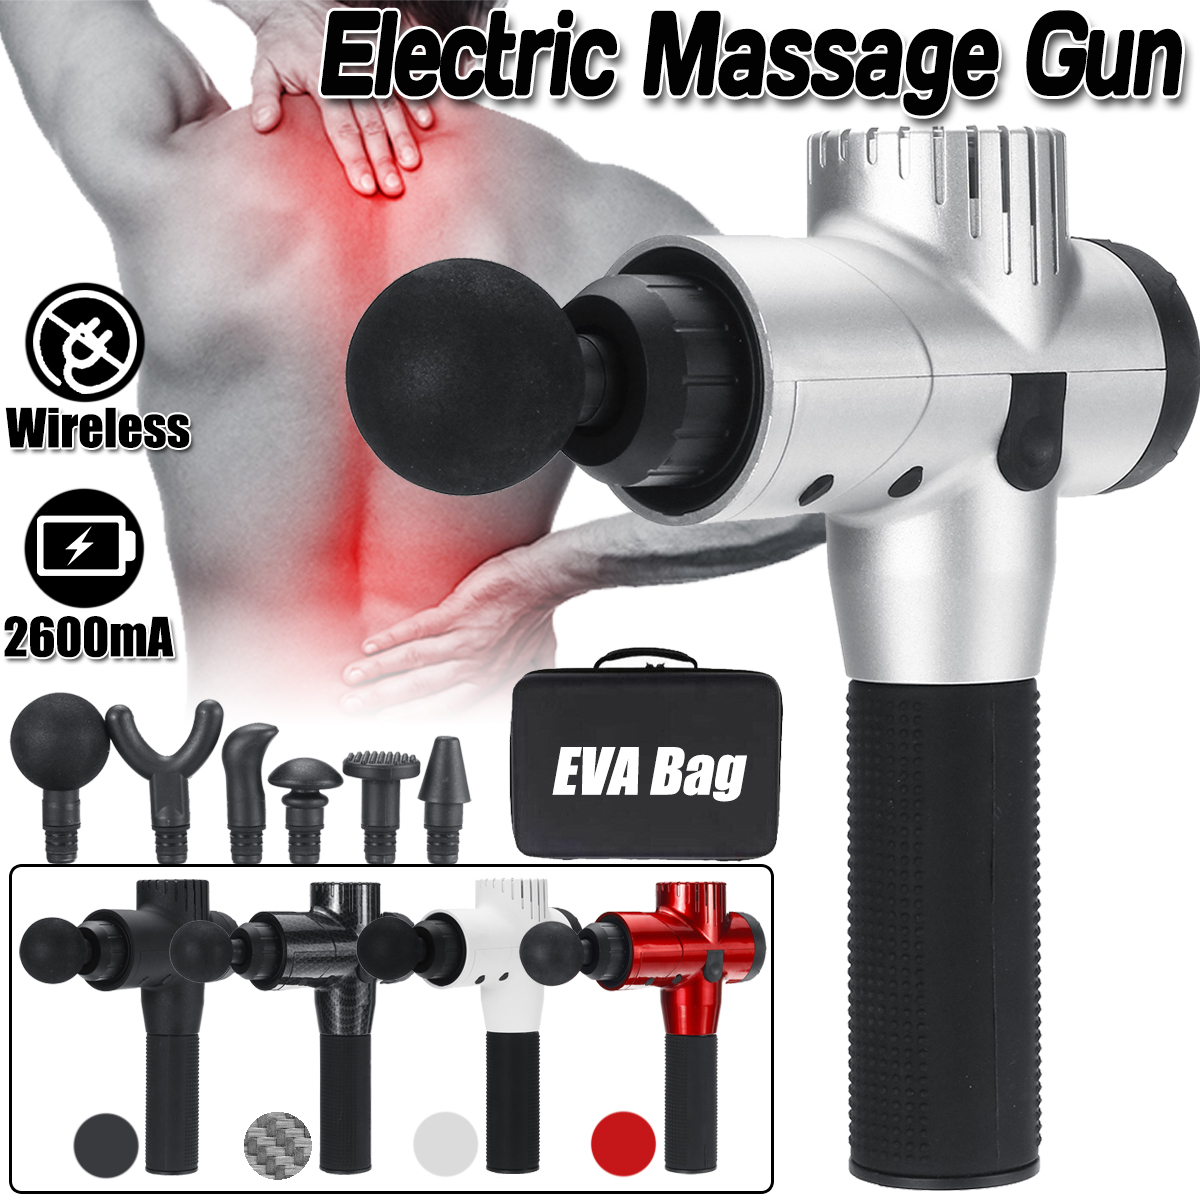 16.8V 2600mAh Muscle Massager 5 Speed Handheld Percussive